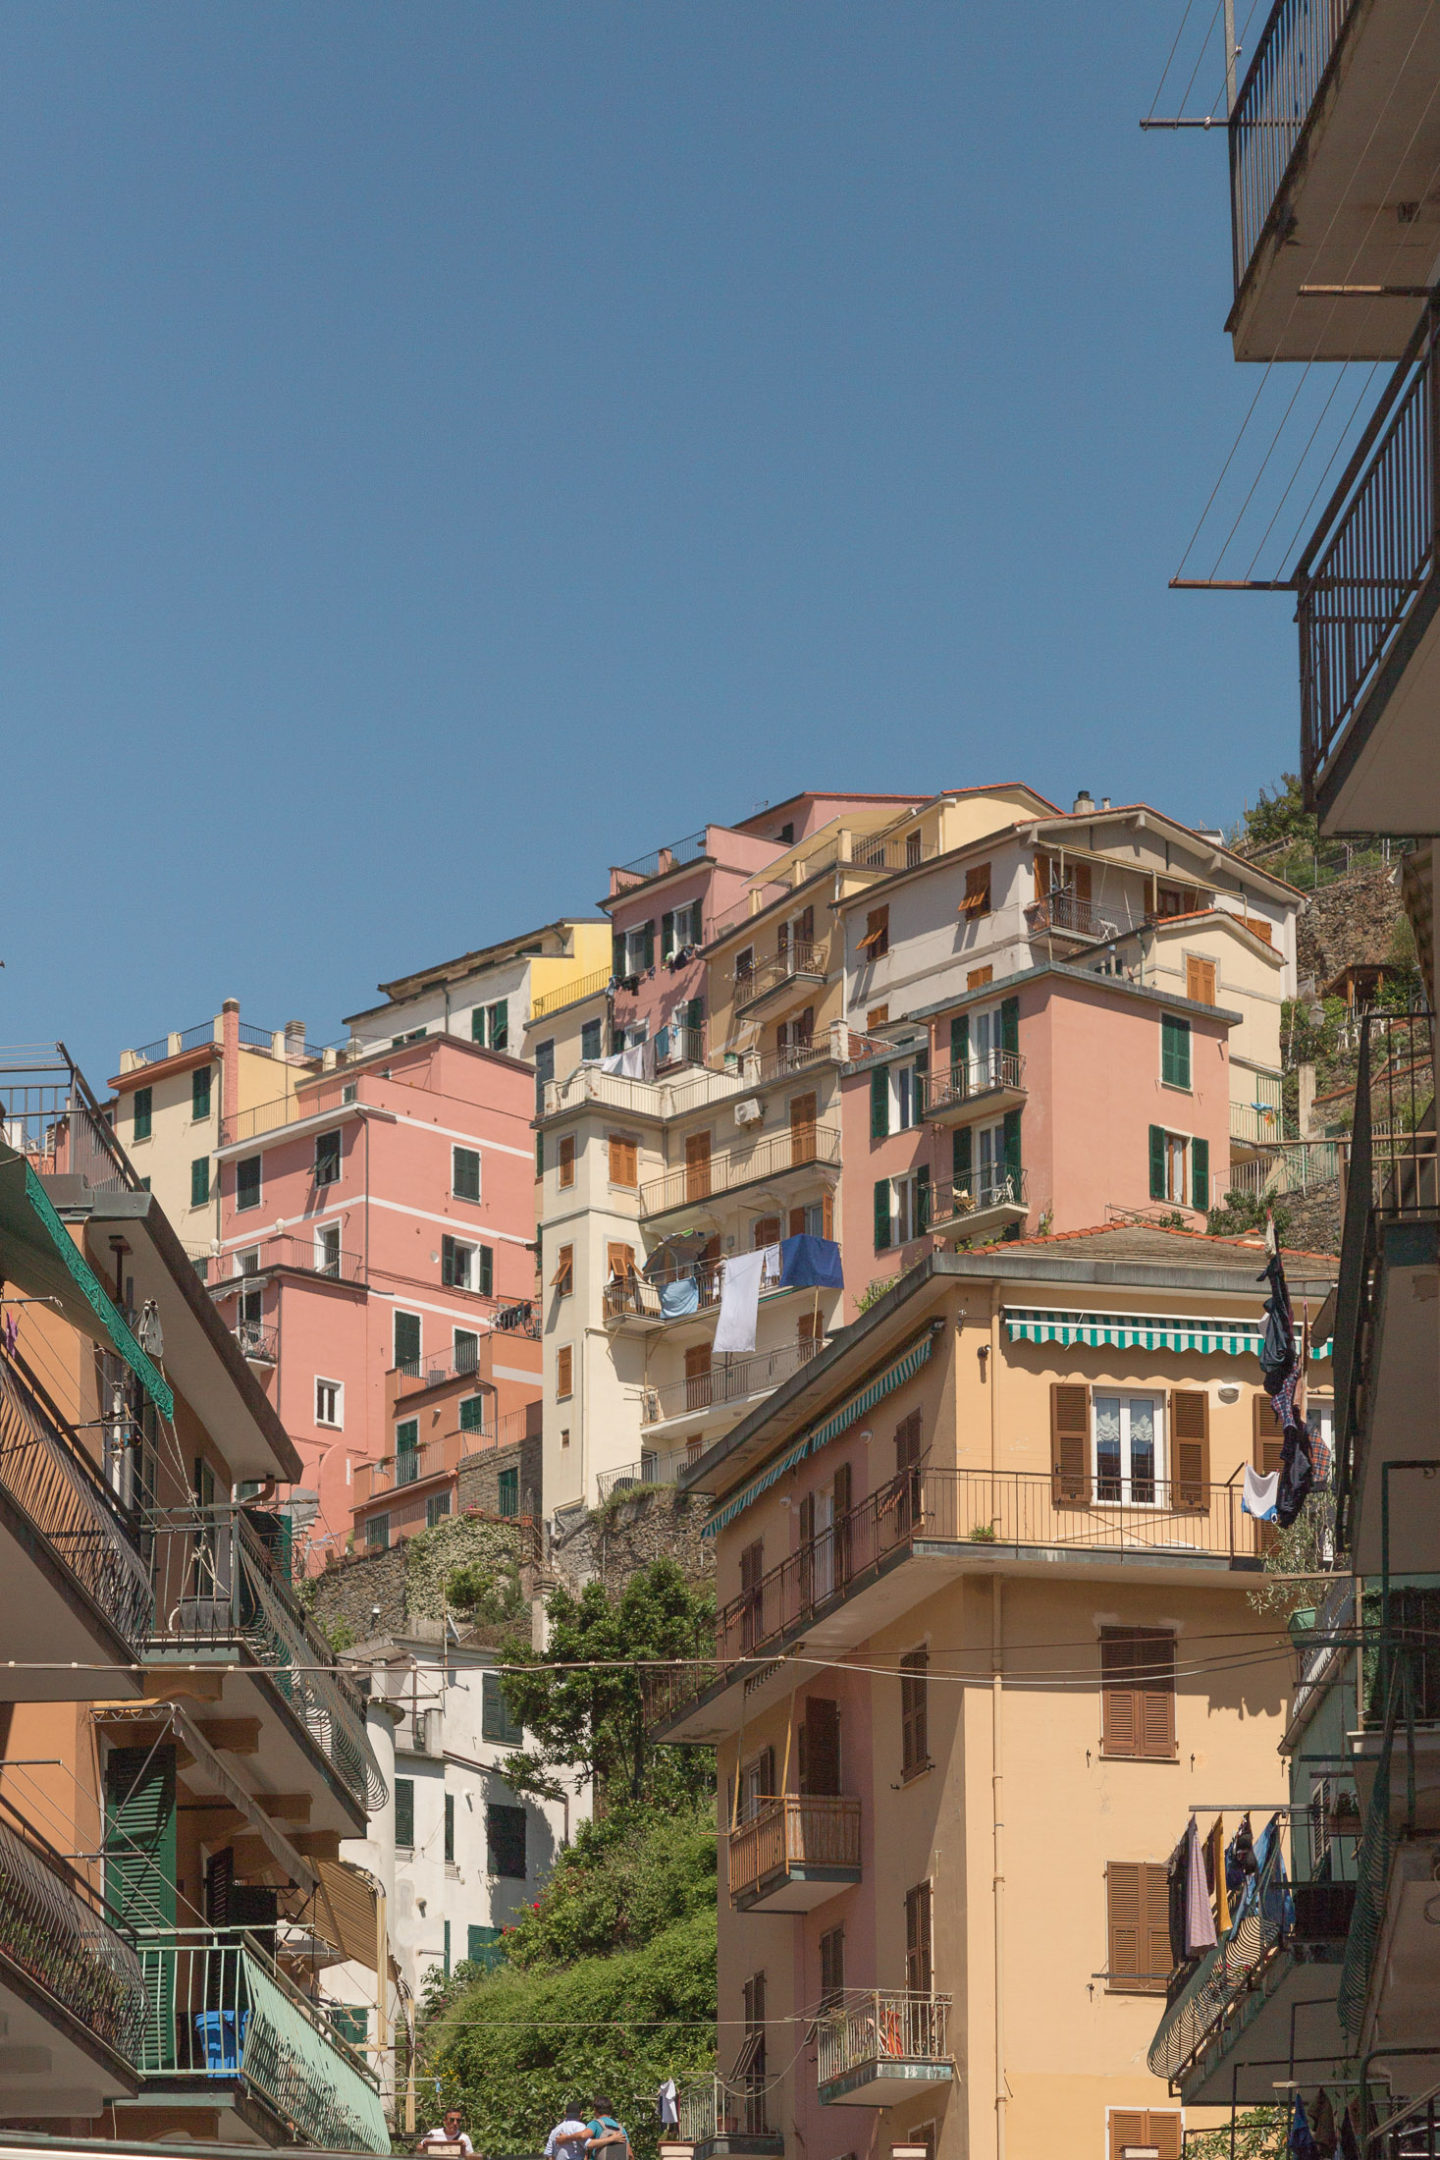 angled up view of pastel colored buildings